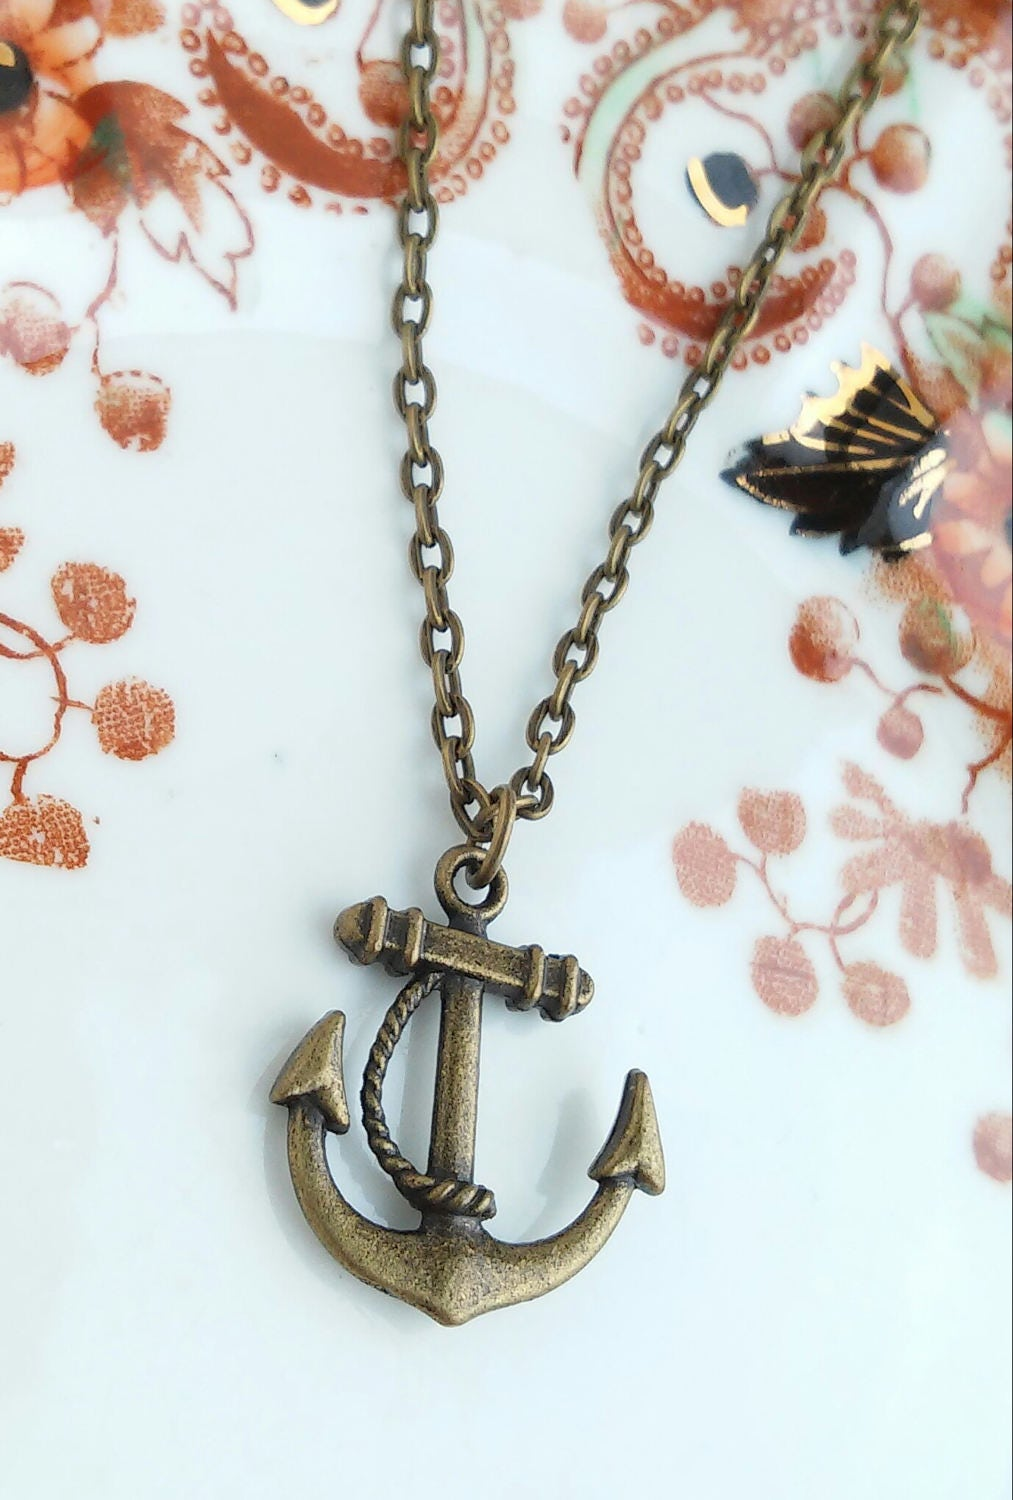 Anchor Pendant Necklace Nautical Charm 20 Antique Bronze Tone Chain Deep Sea Ocean